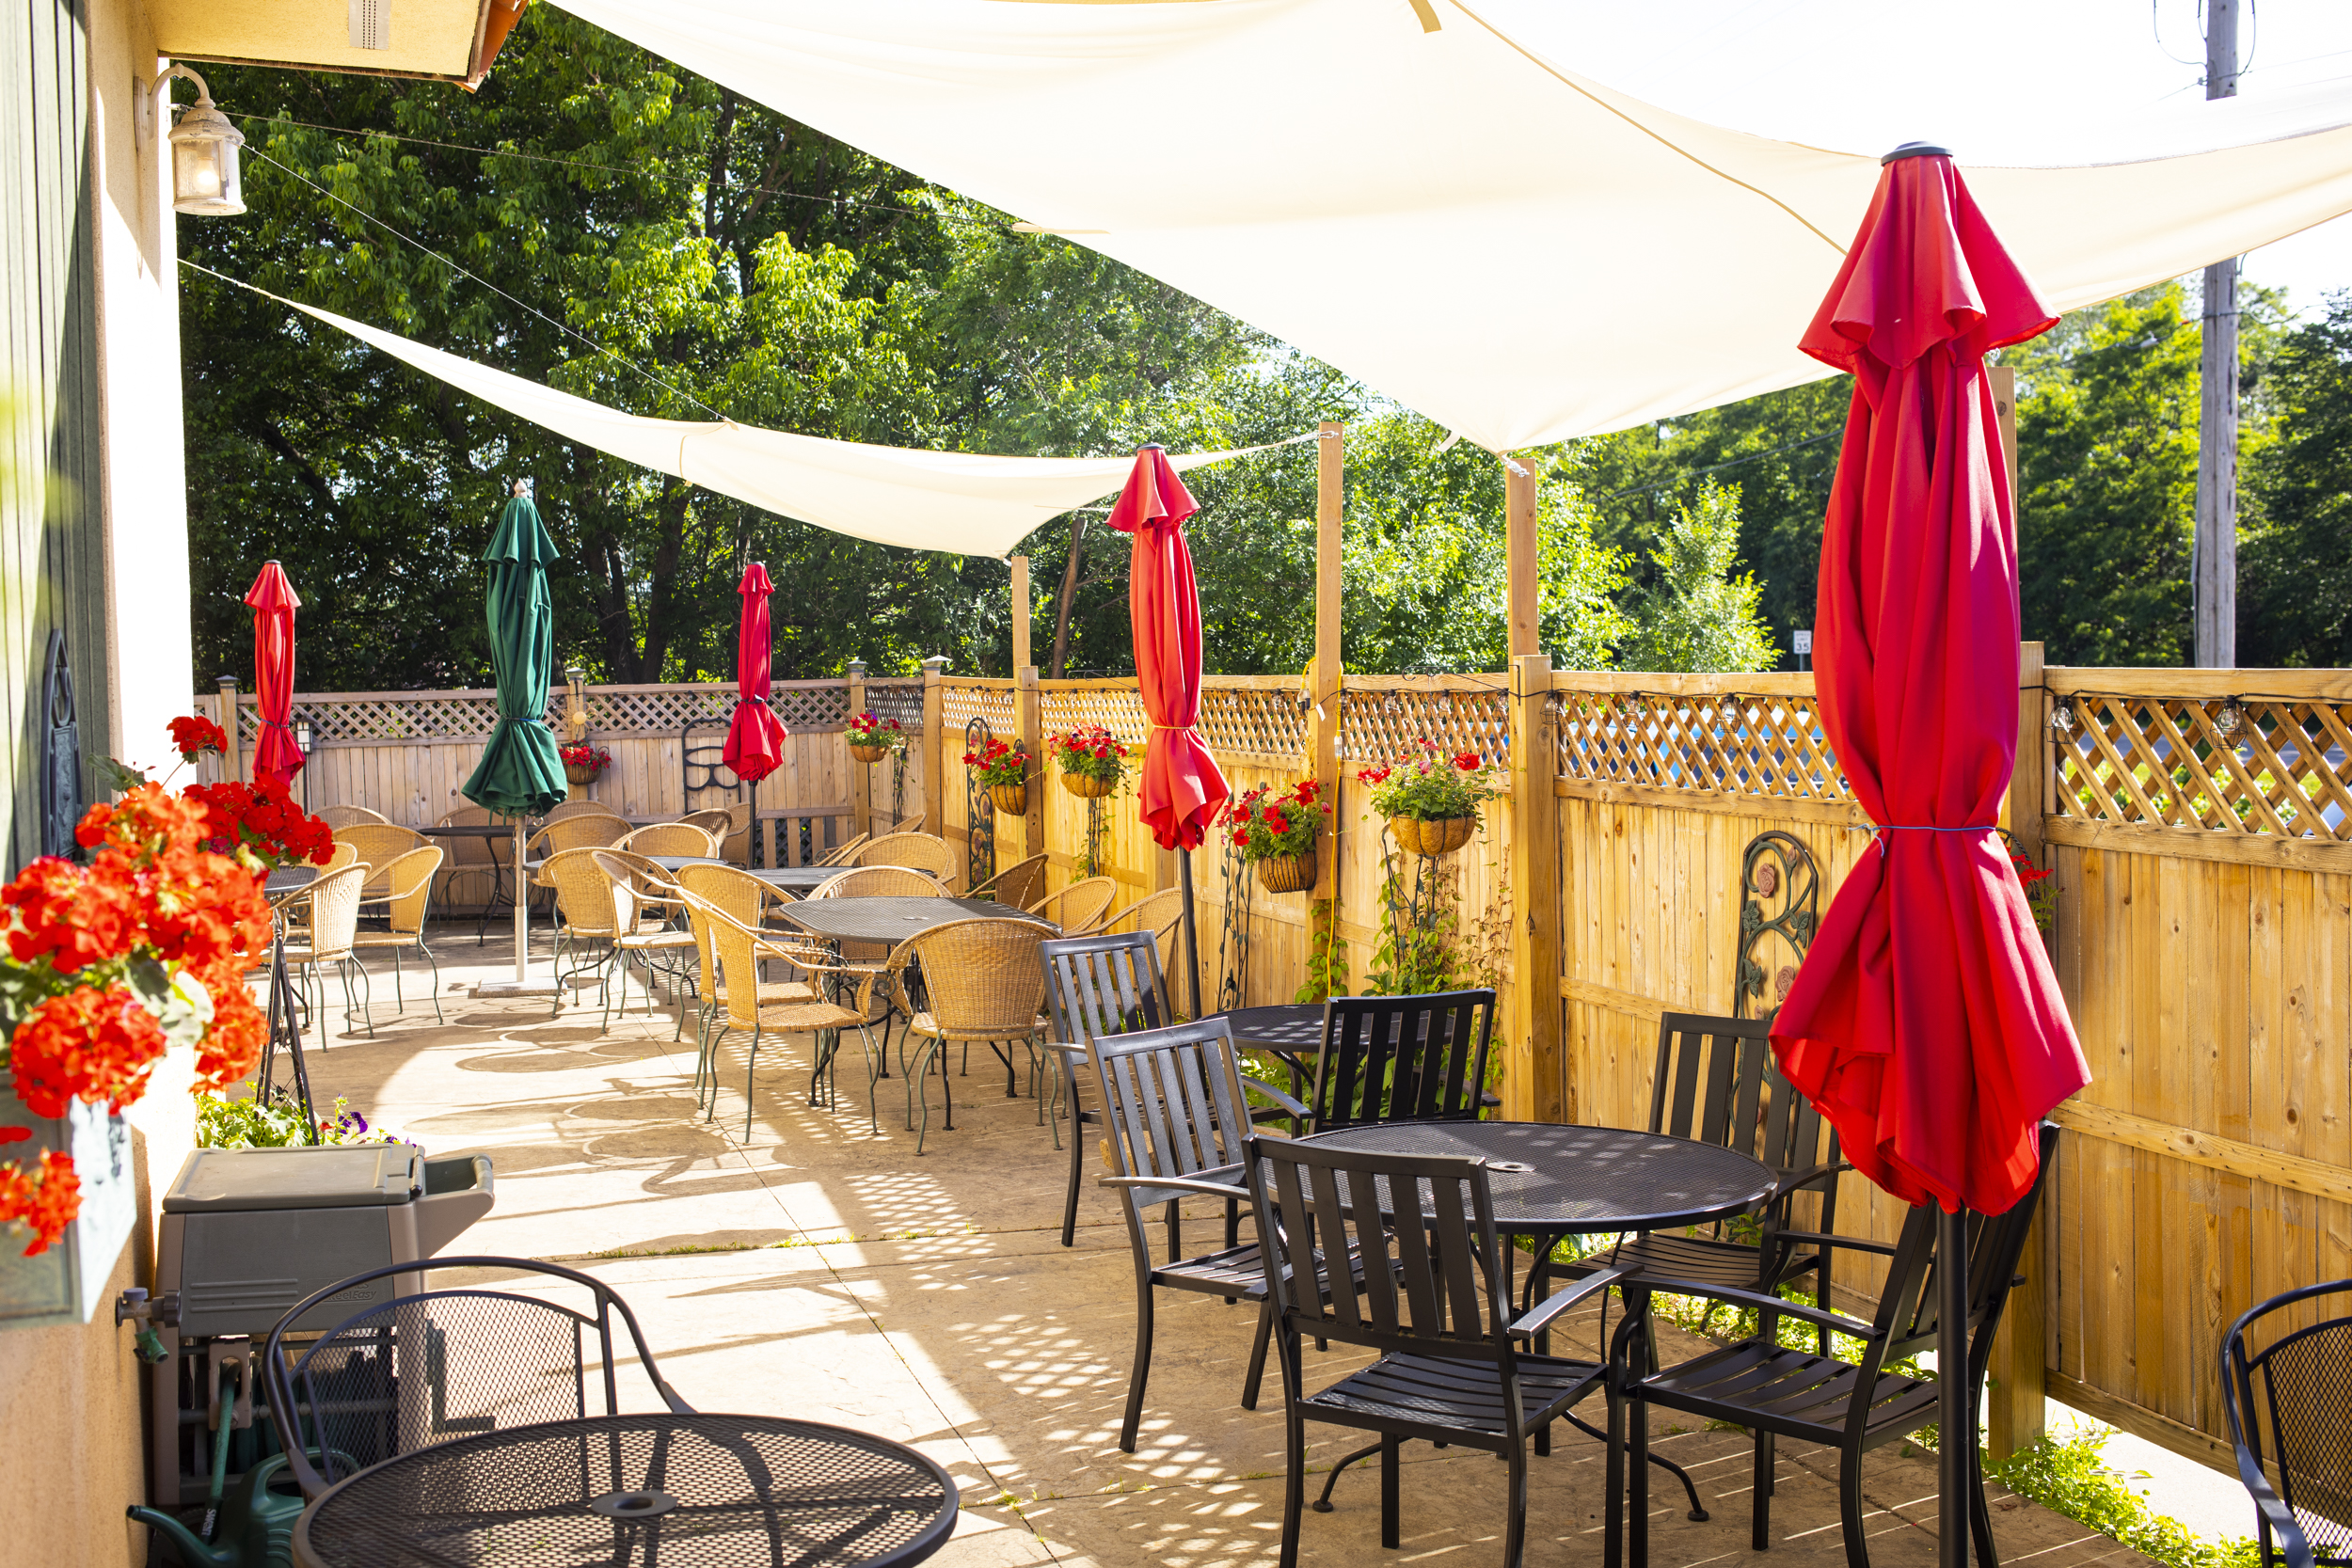 Mama Maria's patio in Hudson, Wisconsin // Photo by Tj Turner